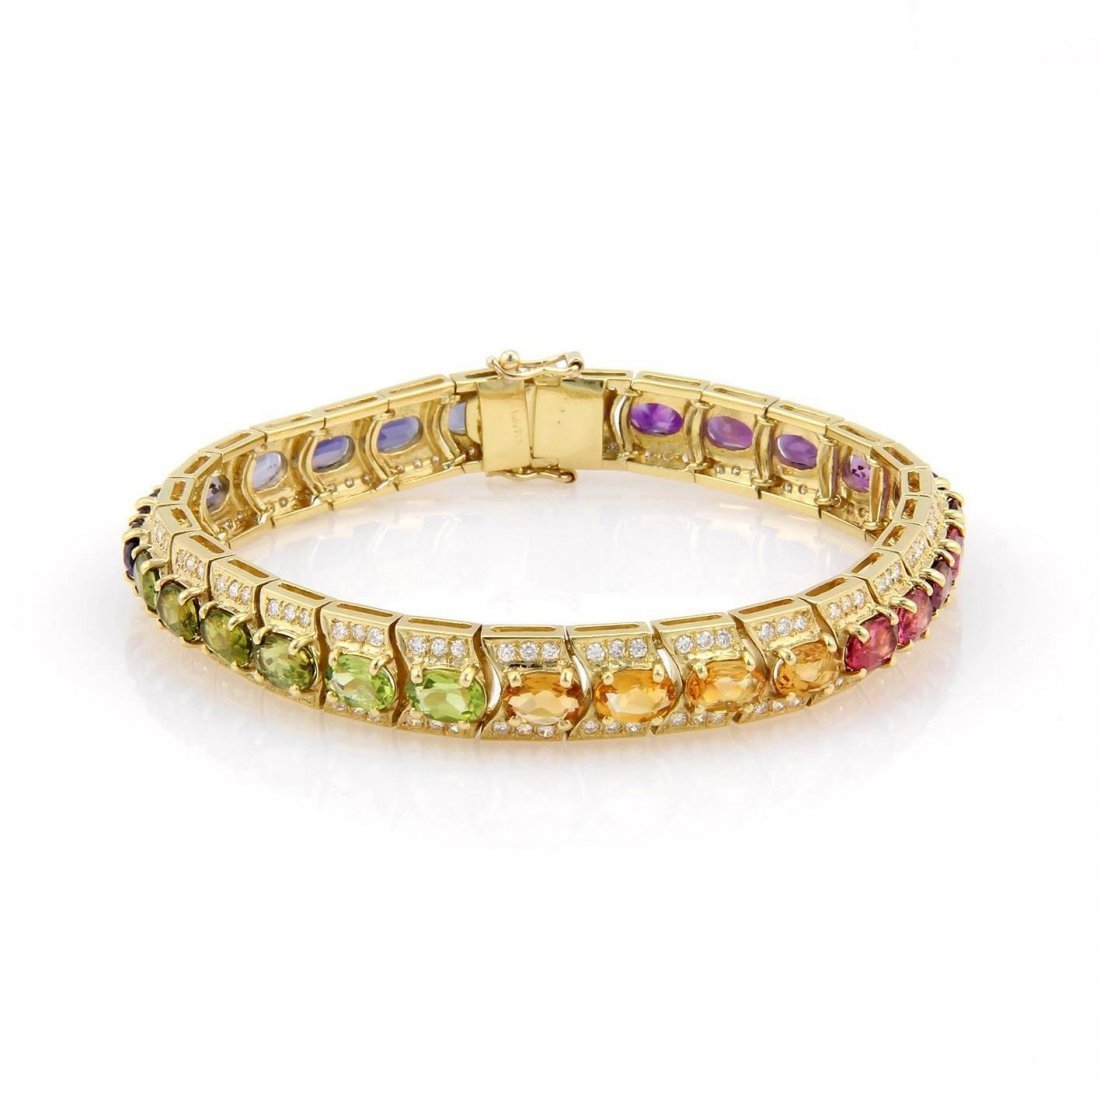 18K Yellow Gold Multi Colored Gemstone & Diamond Tennis